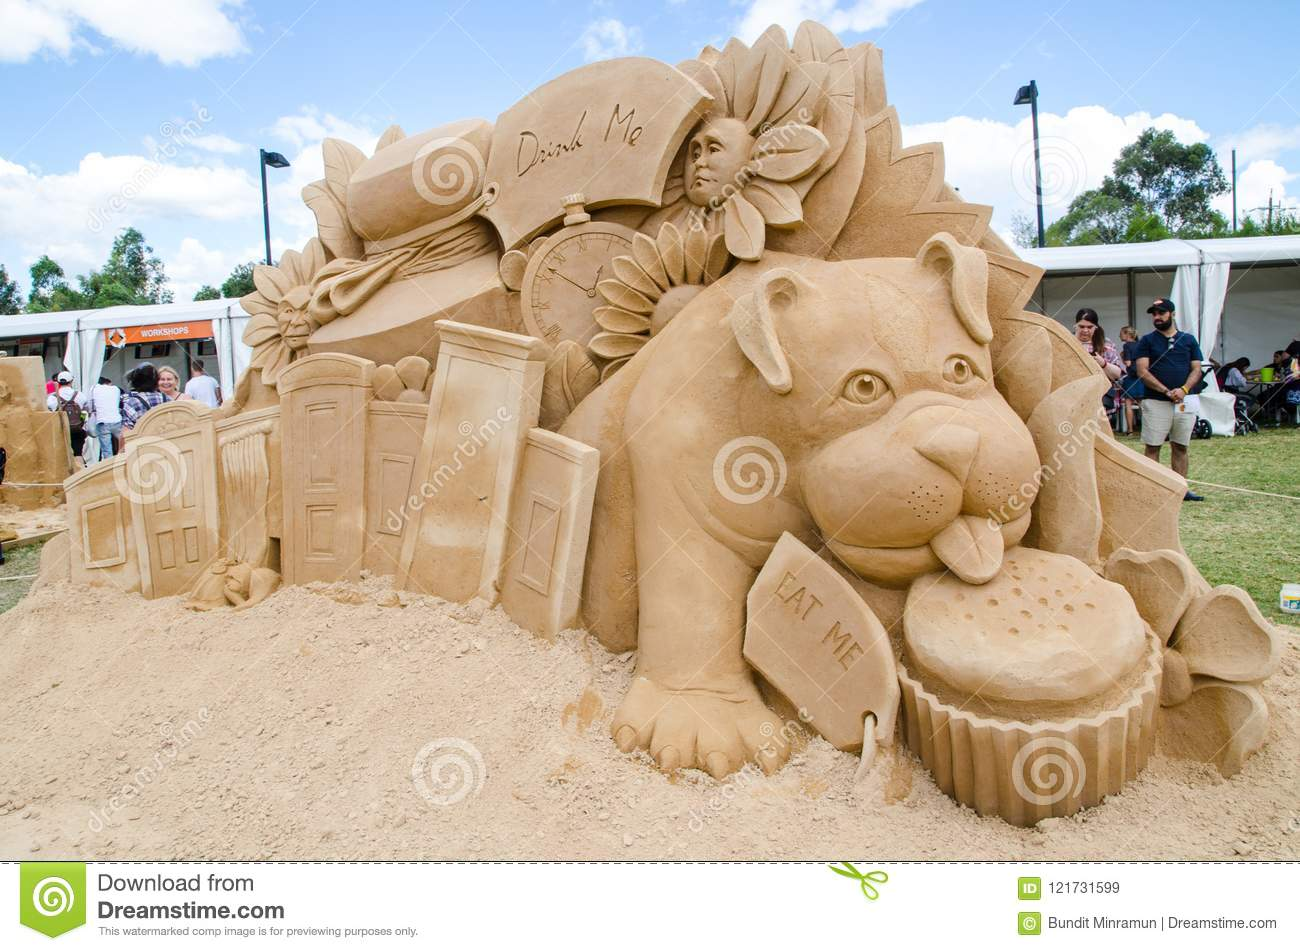 Beautiful Sand Sculpture `Hall of Doors` in Wonderland exhibition, at Blacktown Showground.